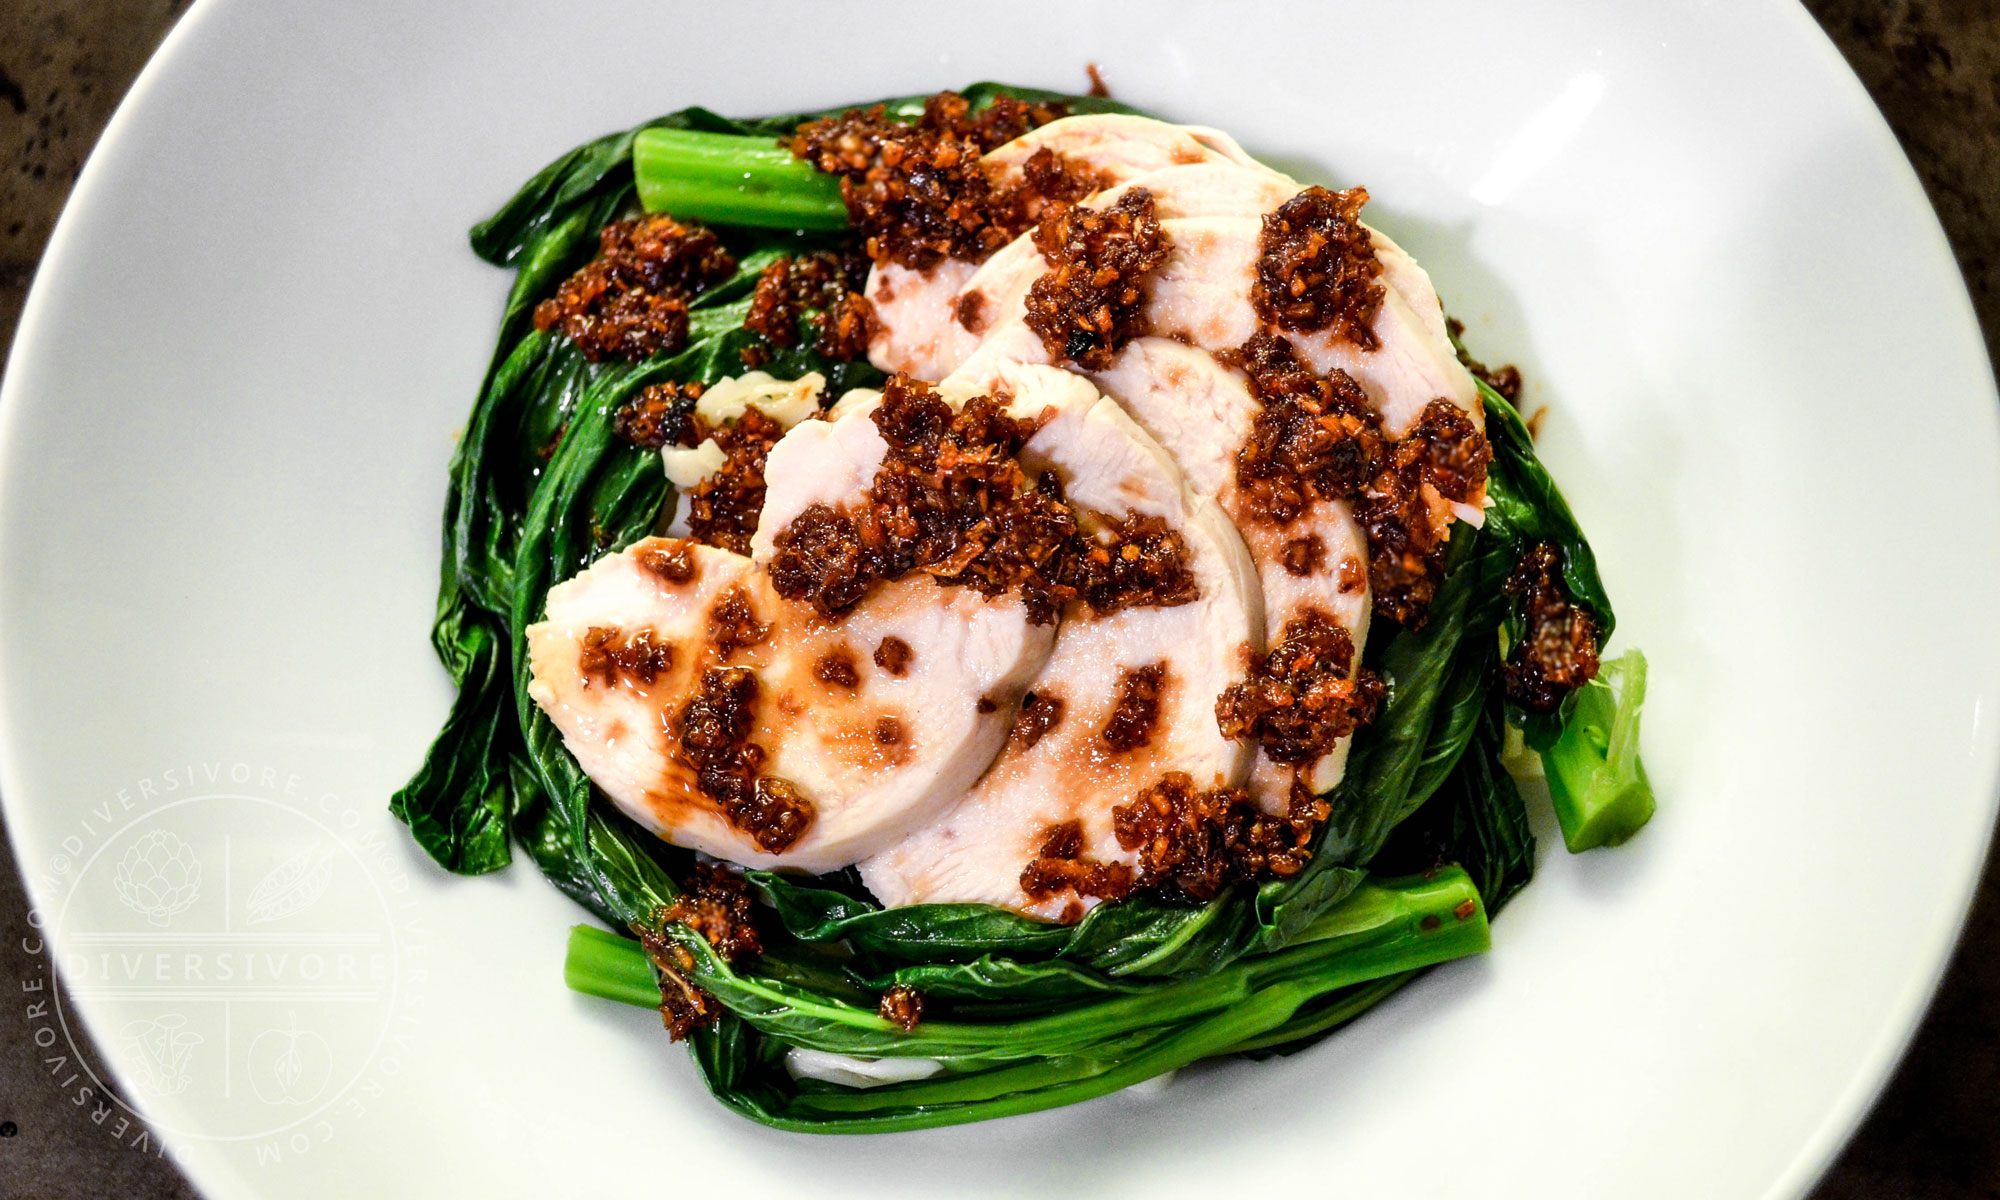 Poached Chicken and Choy Sum (Hakka-style) with Garlic and Ginger Sauce - Diversivore.com